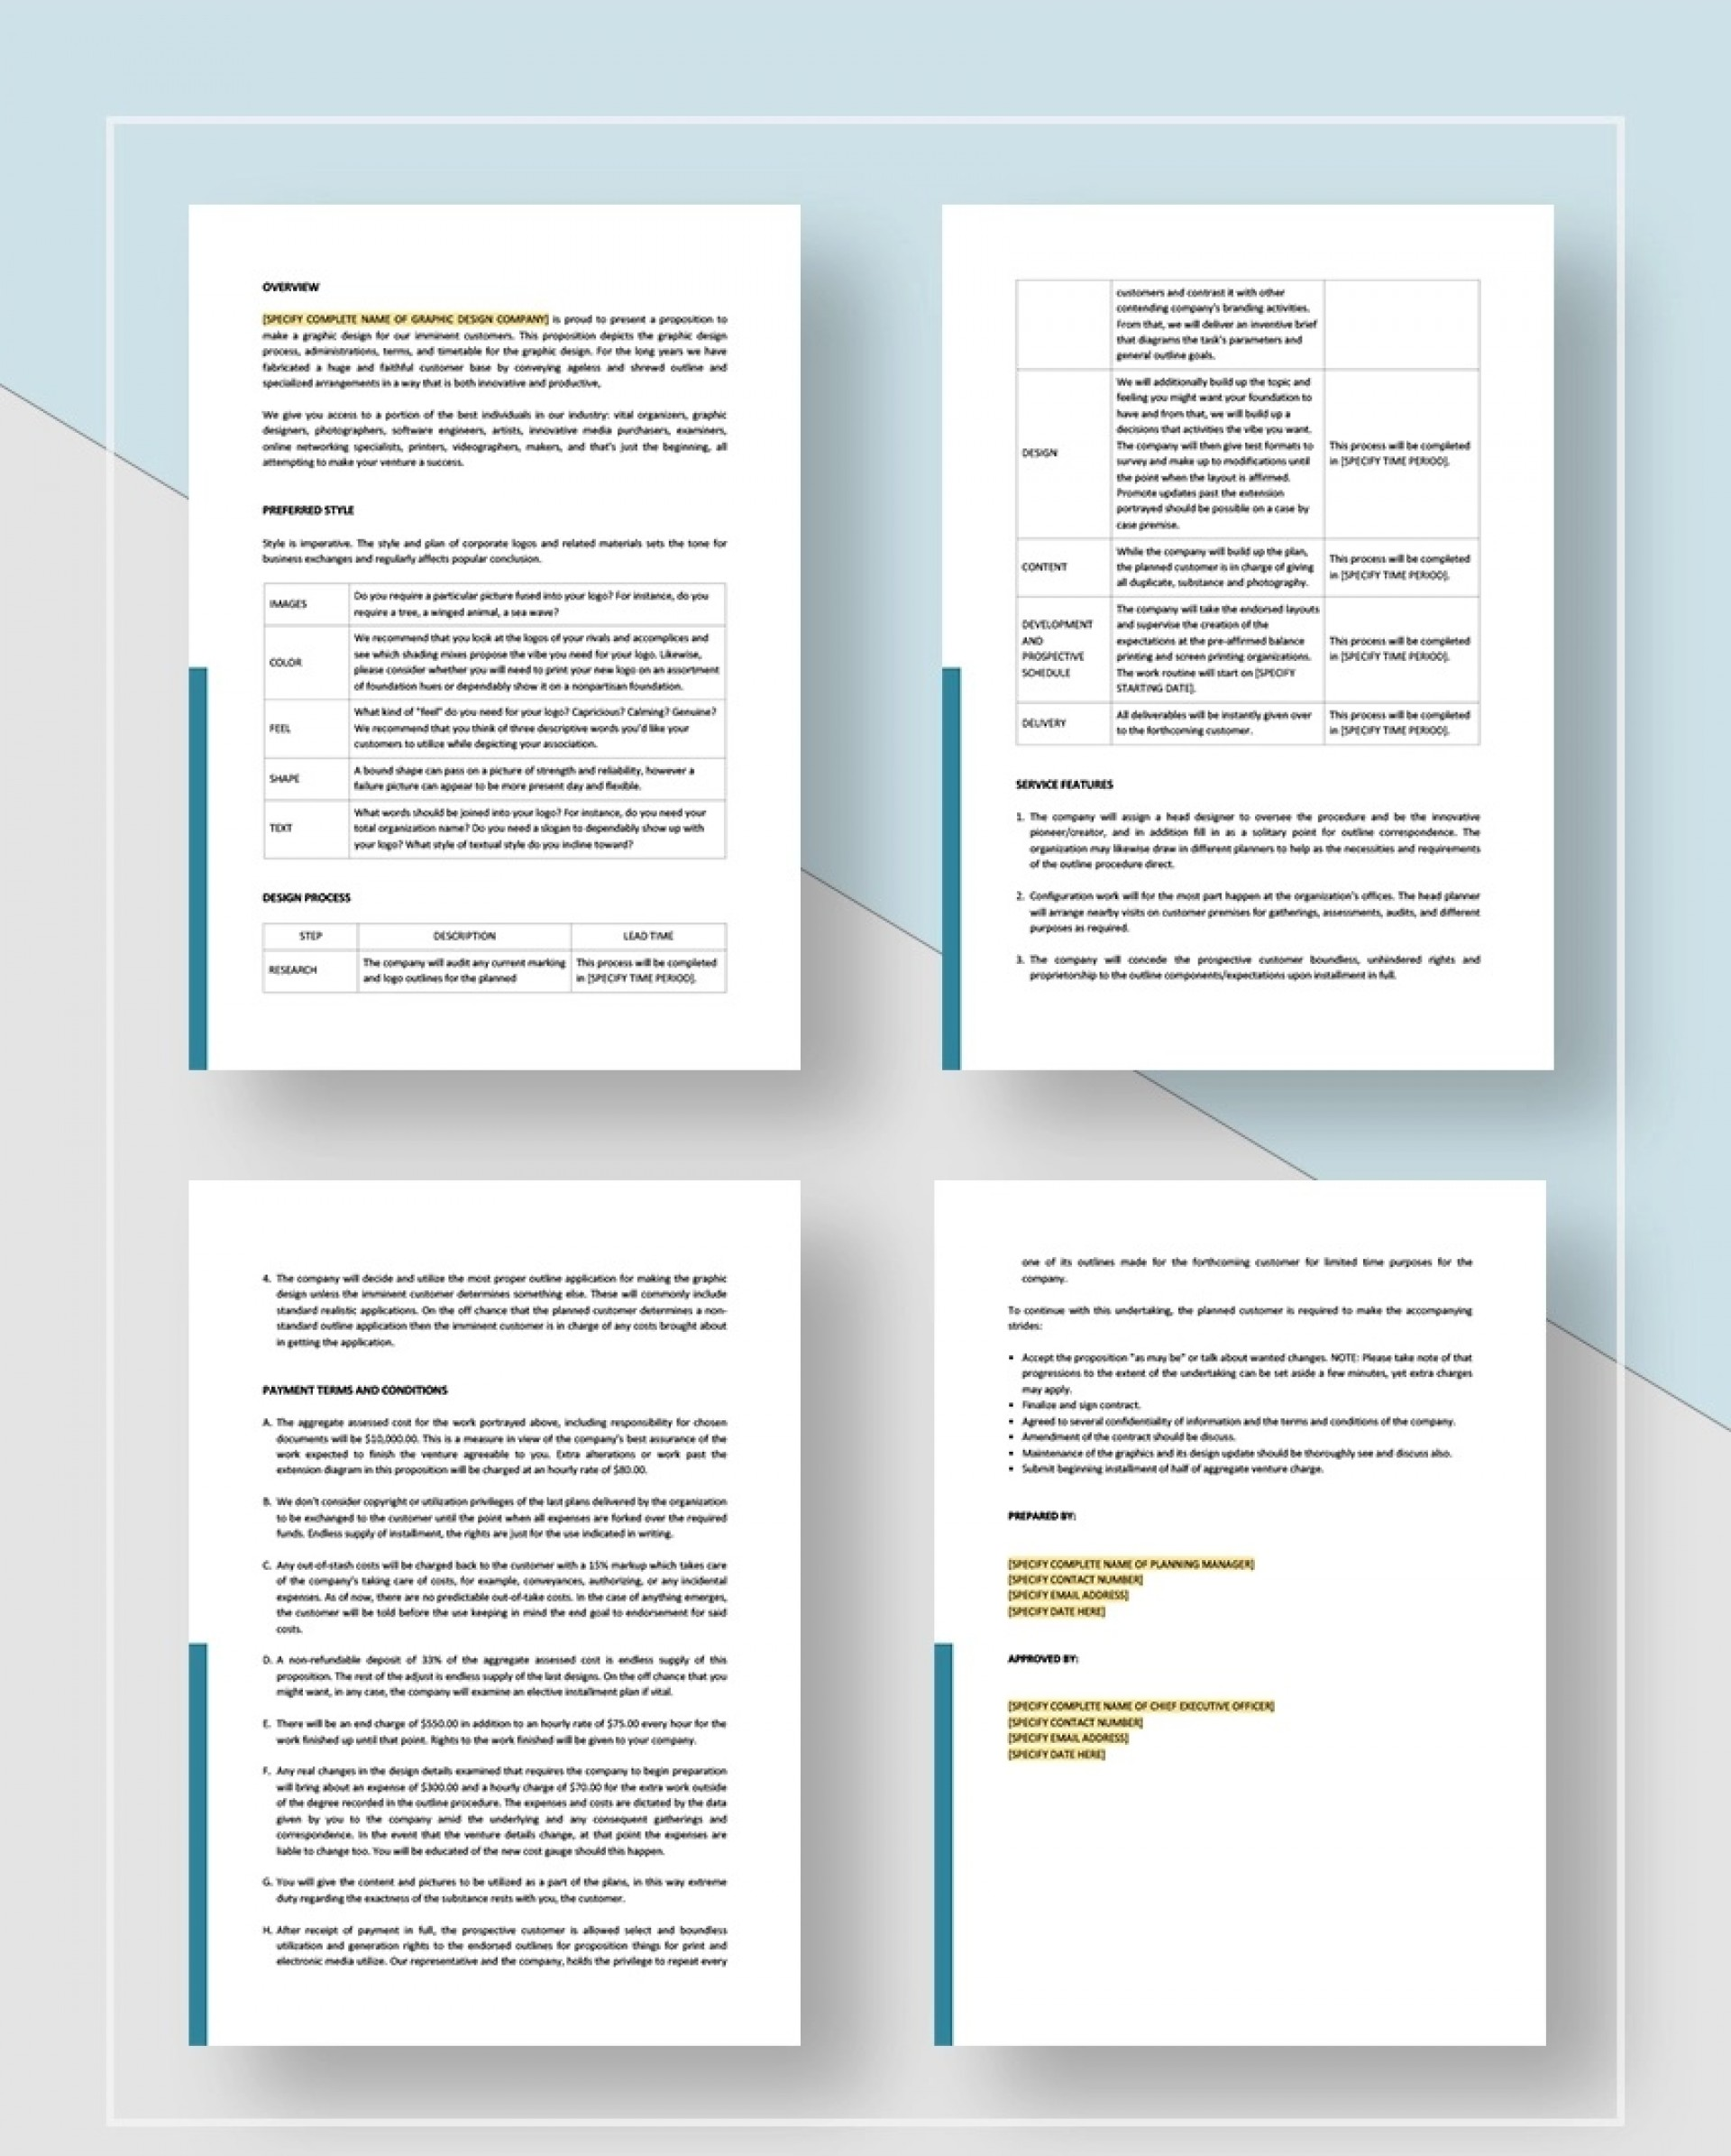 Graphic Design Proposal Template Sample Complete Jpg  Free Download Indesign1920